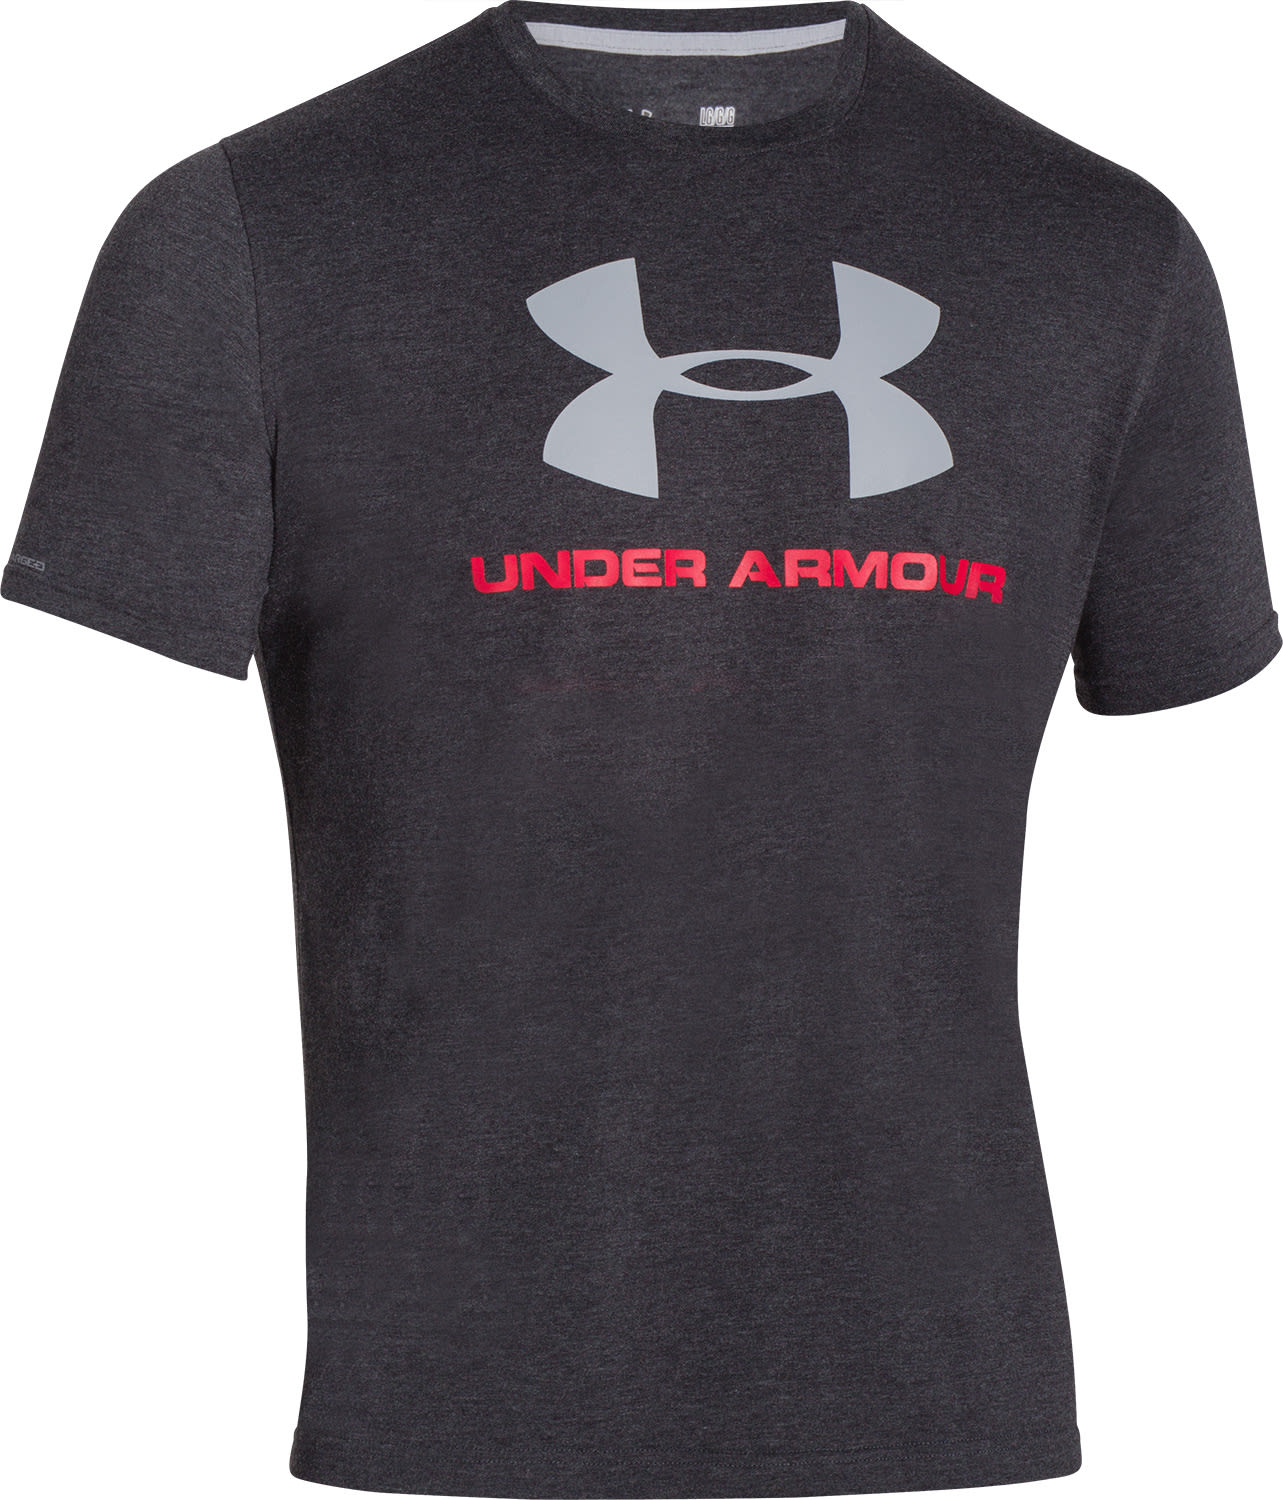 On sale under armour charged cotton sportstyle logo t for Under armour tee shirts sale